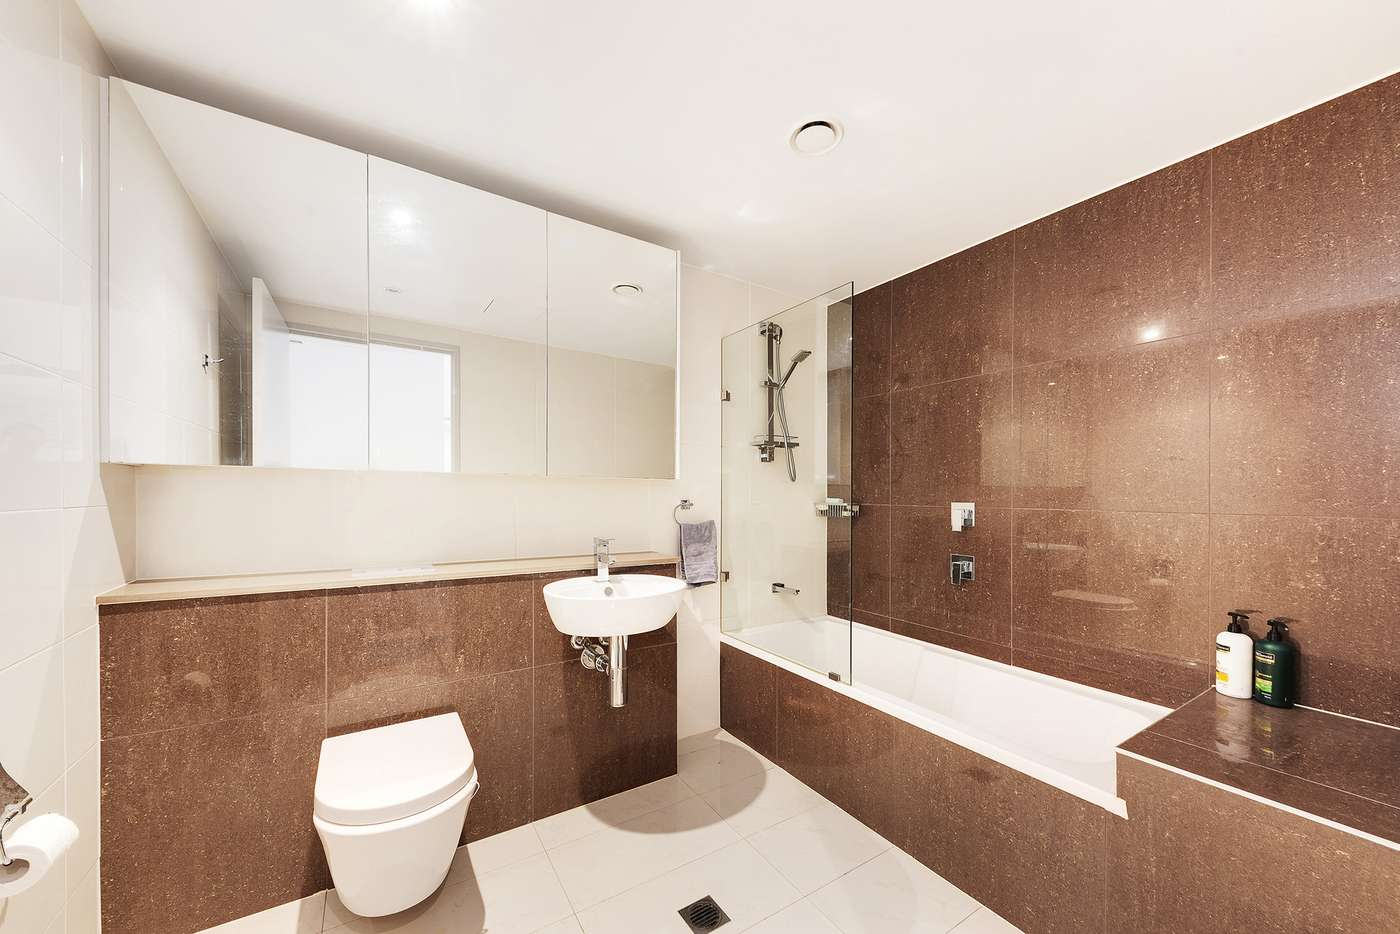 Fifth view of Homely apartment listing, 52/132-138 Killeaton Street, St Ives NSW 2075